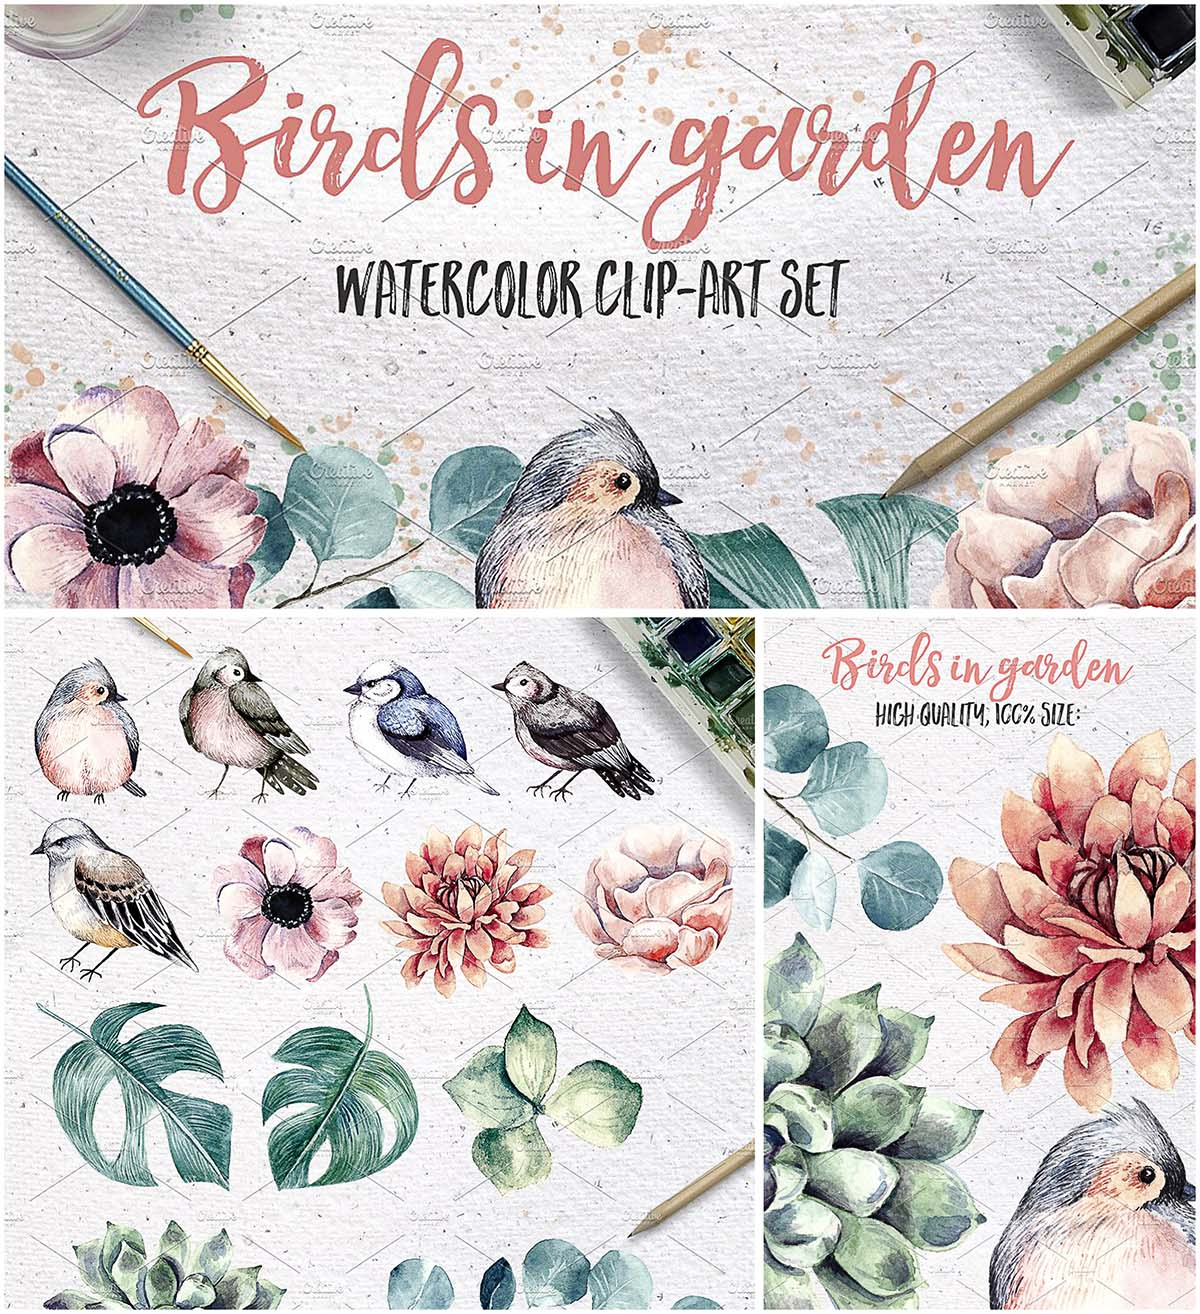 Watercolor birds and plants set